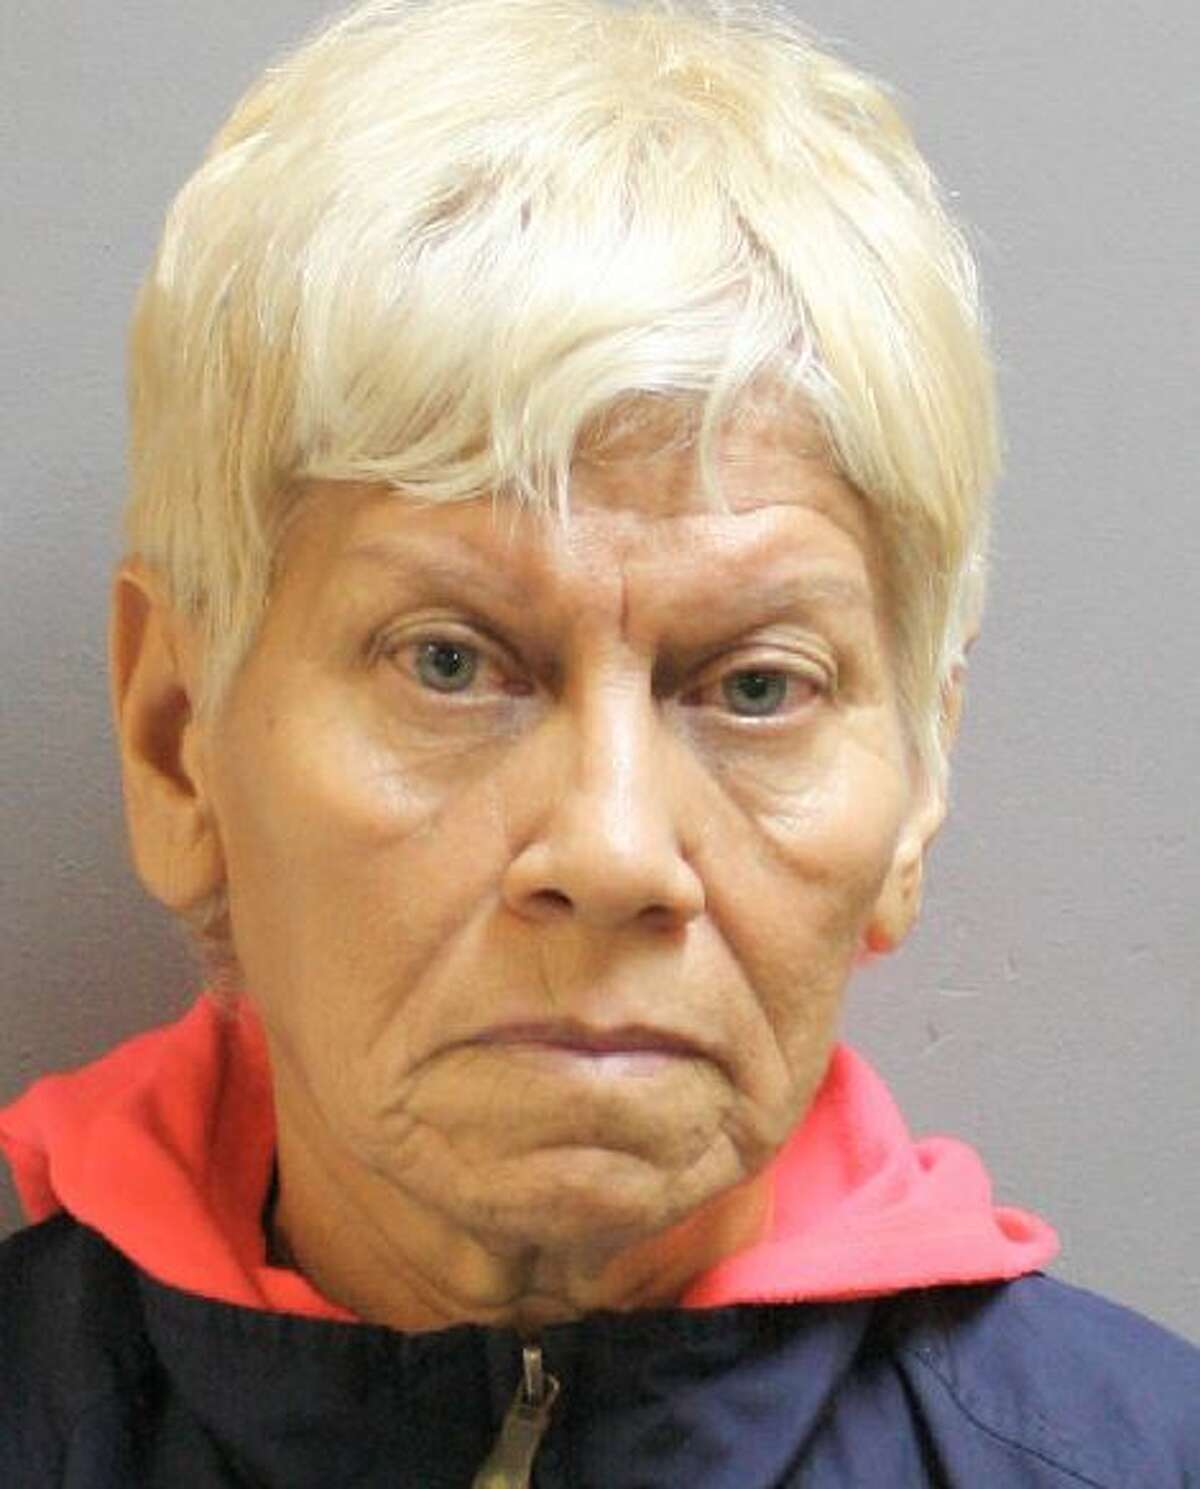 A 68-year-old Houston woman, Amalia Barnette, was sentenced to four years in prison on Wednesday for posing as an ICE agent and promising a woman she could help her husband become a U.S. citizen, according to court documents and the Harris County District Attorney's Office.